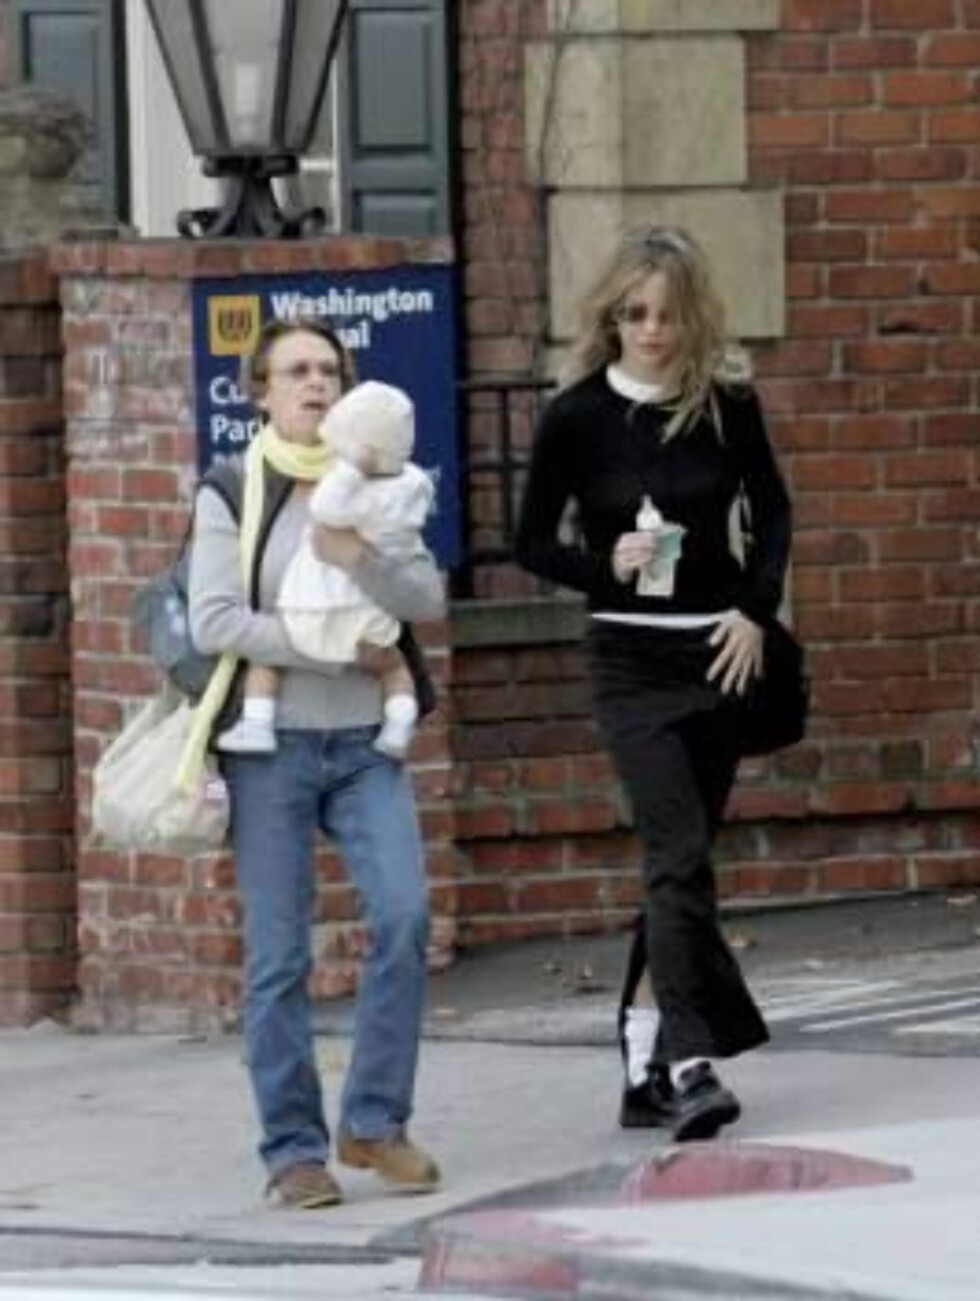 Skinny 44 yr old Meg Ryan taking care of her just  adopted baby from China leaving Zen Zoo Tea cafe in Santa Monica. January 26, 2006 X17agency EXCLUSIVE / ALL OVER PRESS Foto: All Over Press